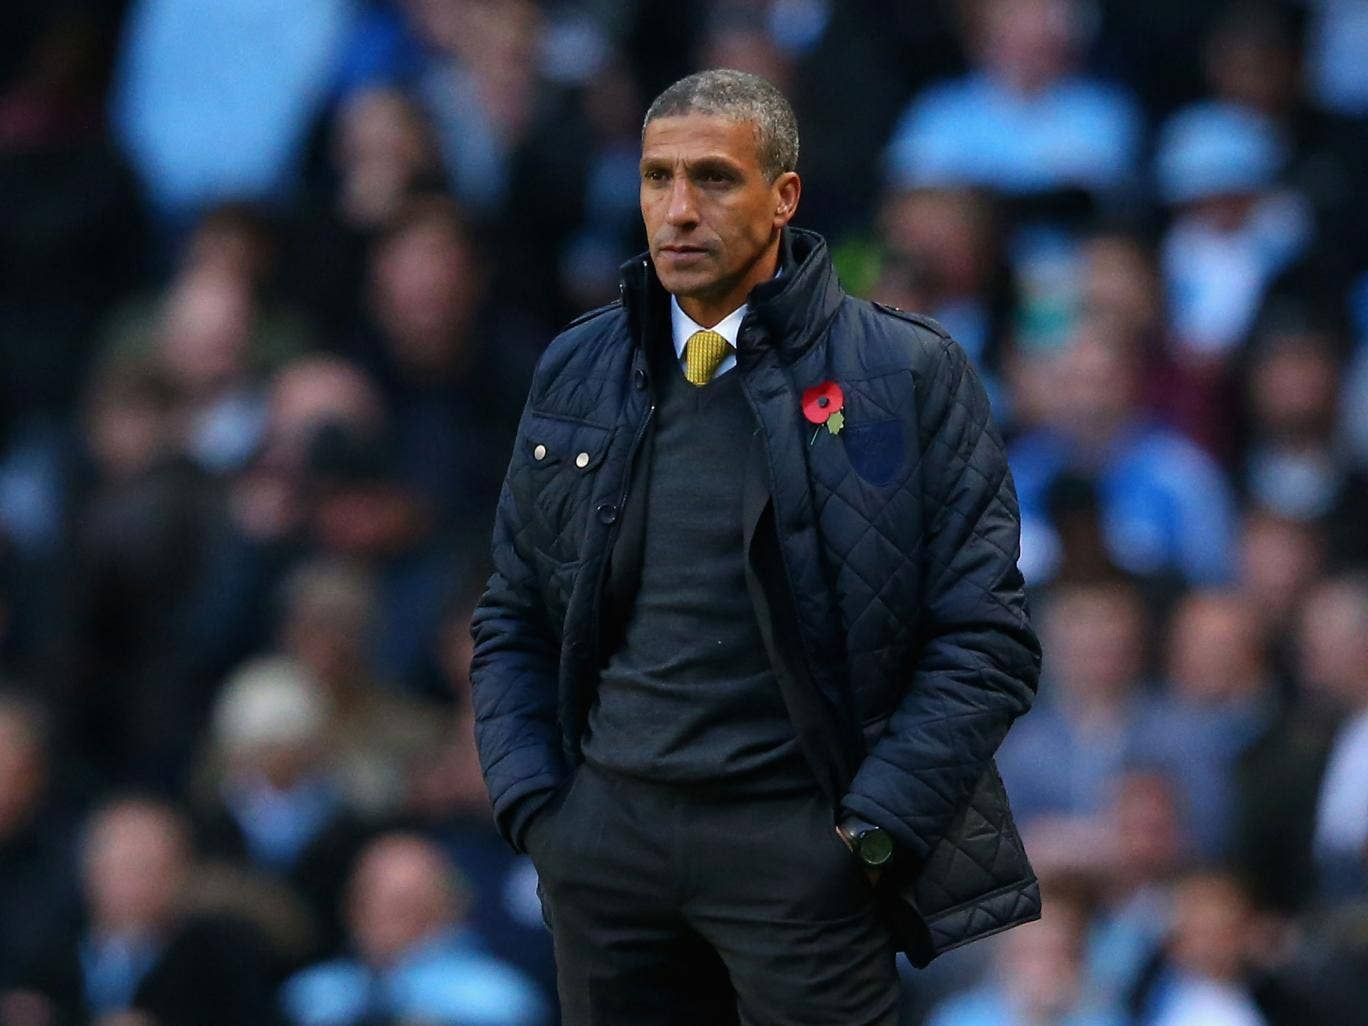 Chris Hughton cuts a lonely figure on the touchline during Norwich City's 7-0 defeat at Manchester City last weekend